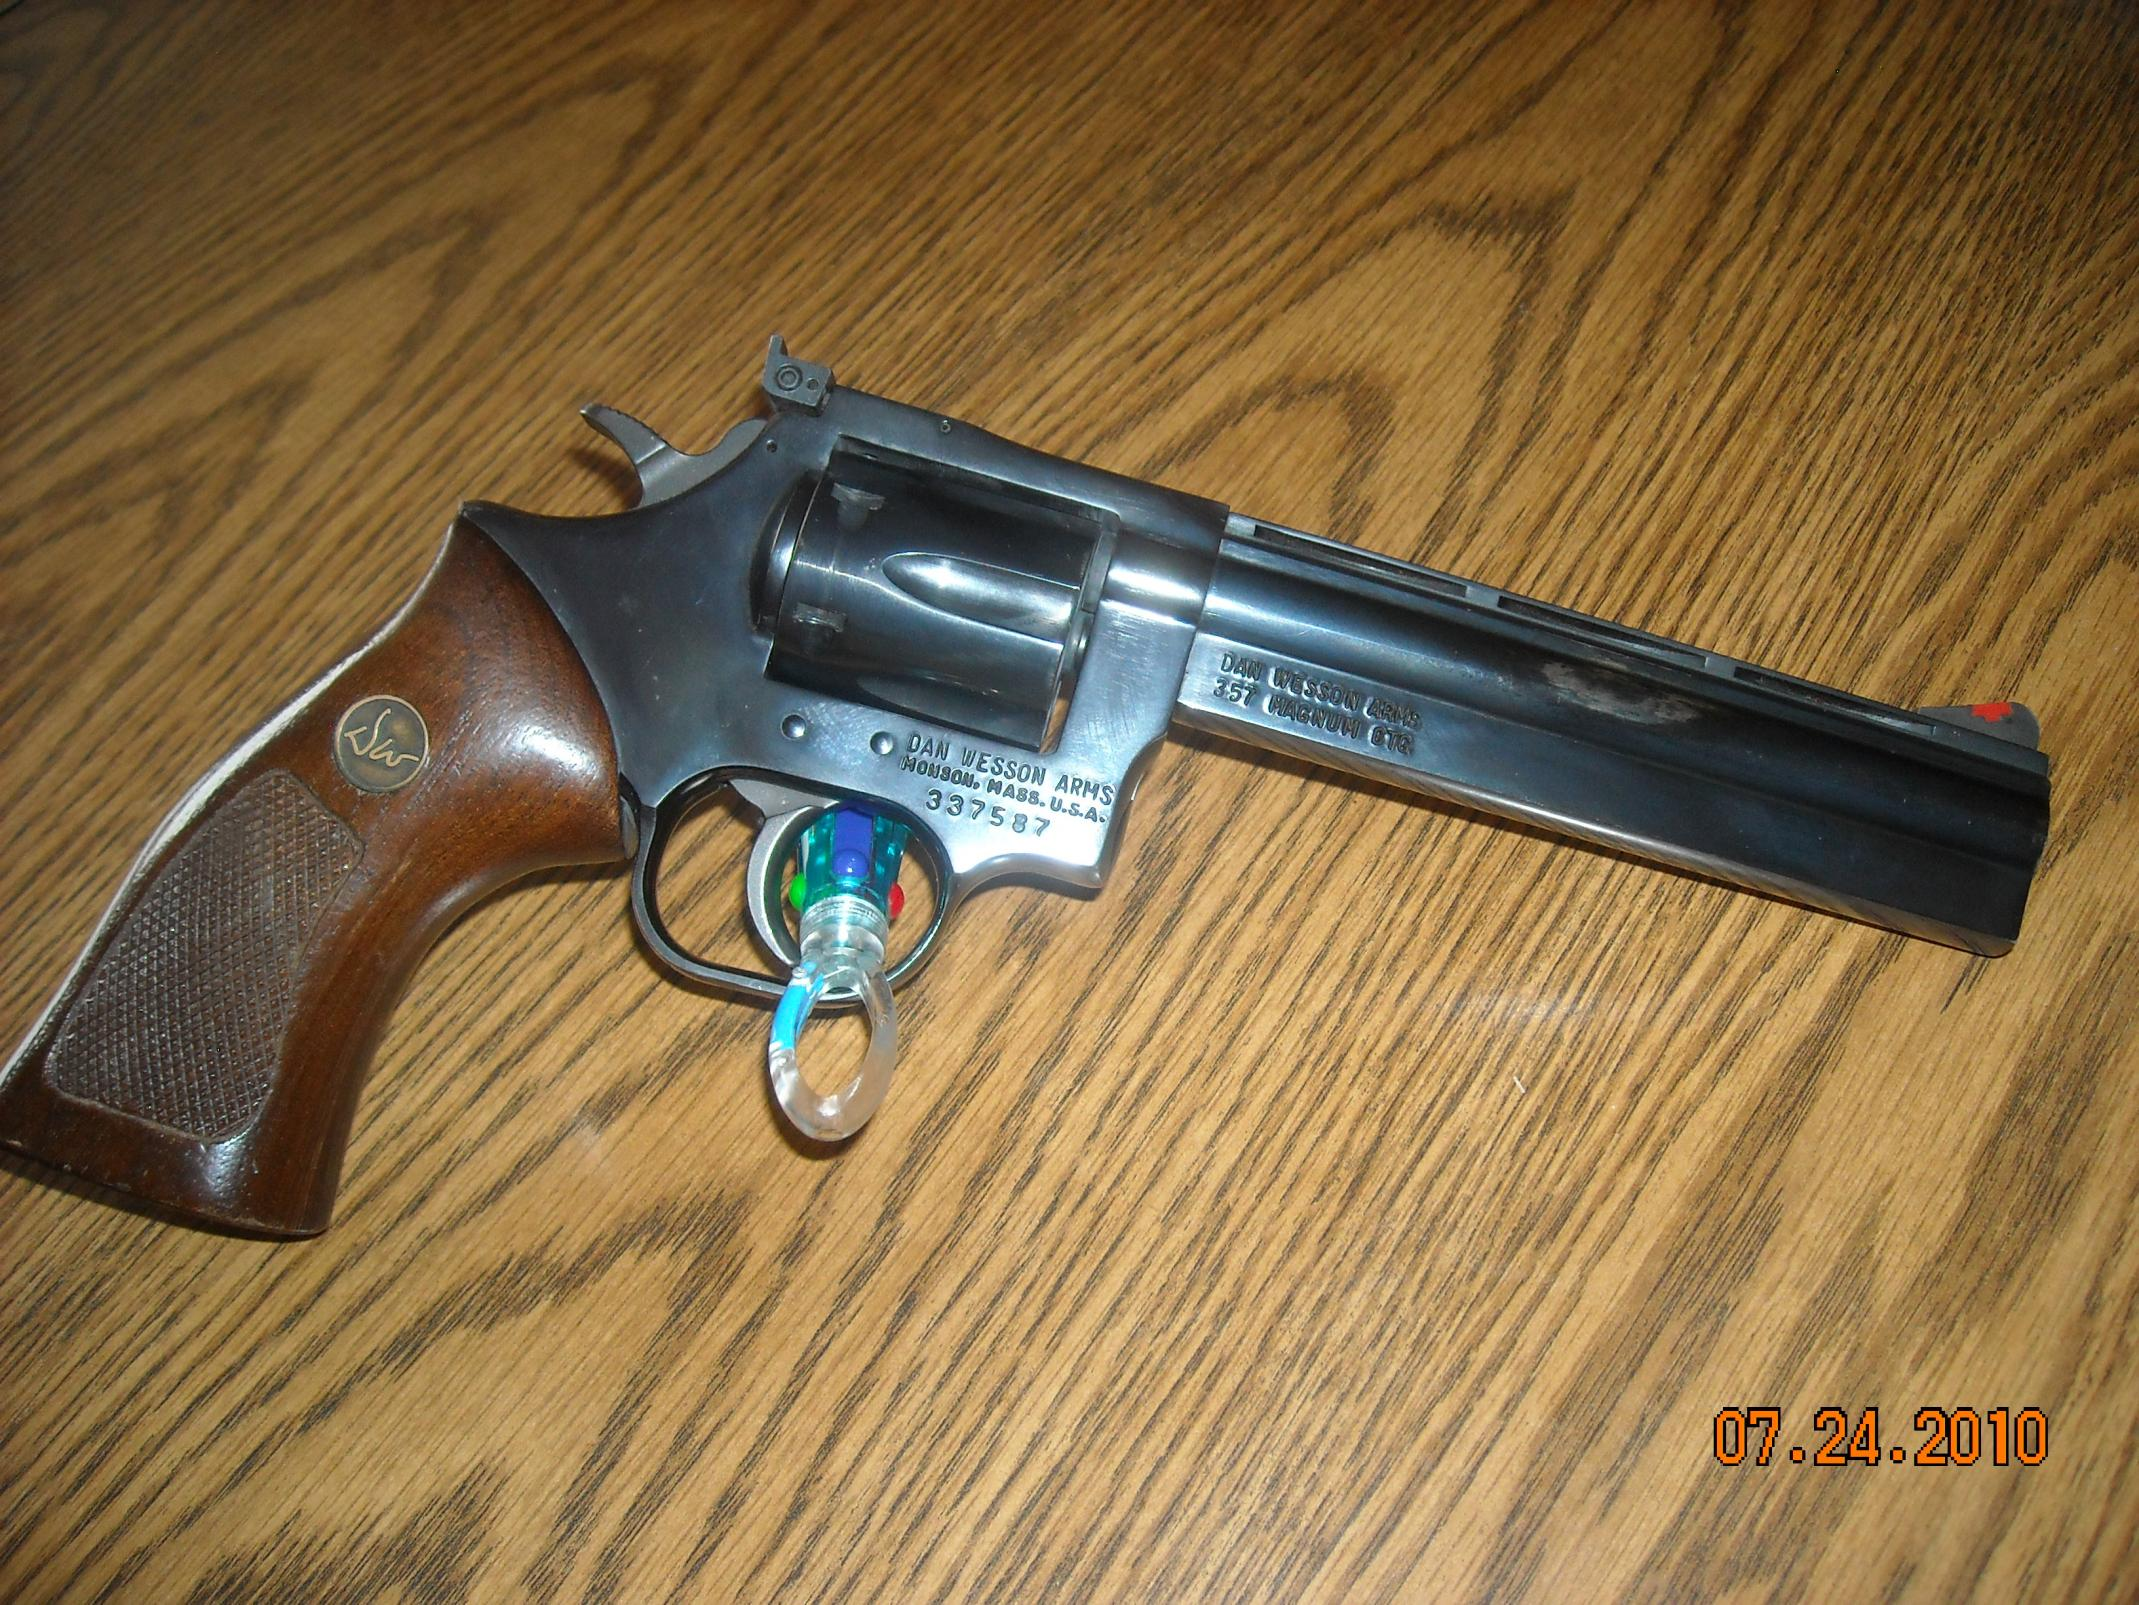 Interested in getting more revolvers-dscn1206.jpg